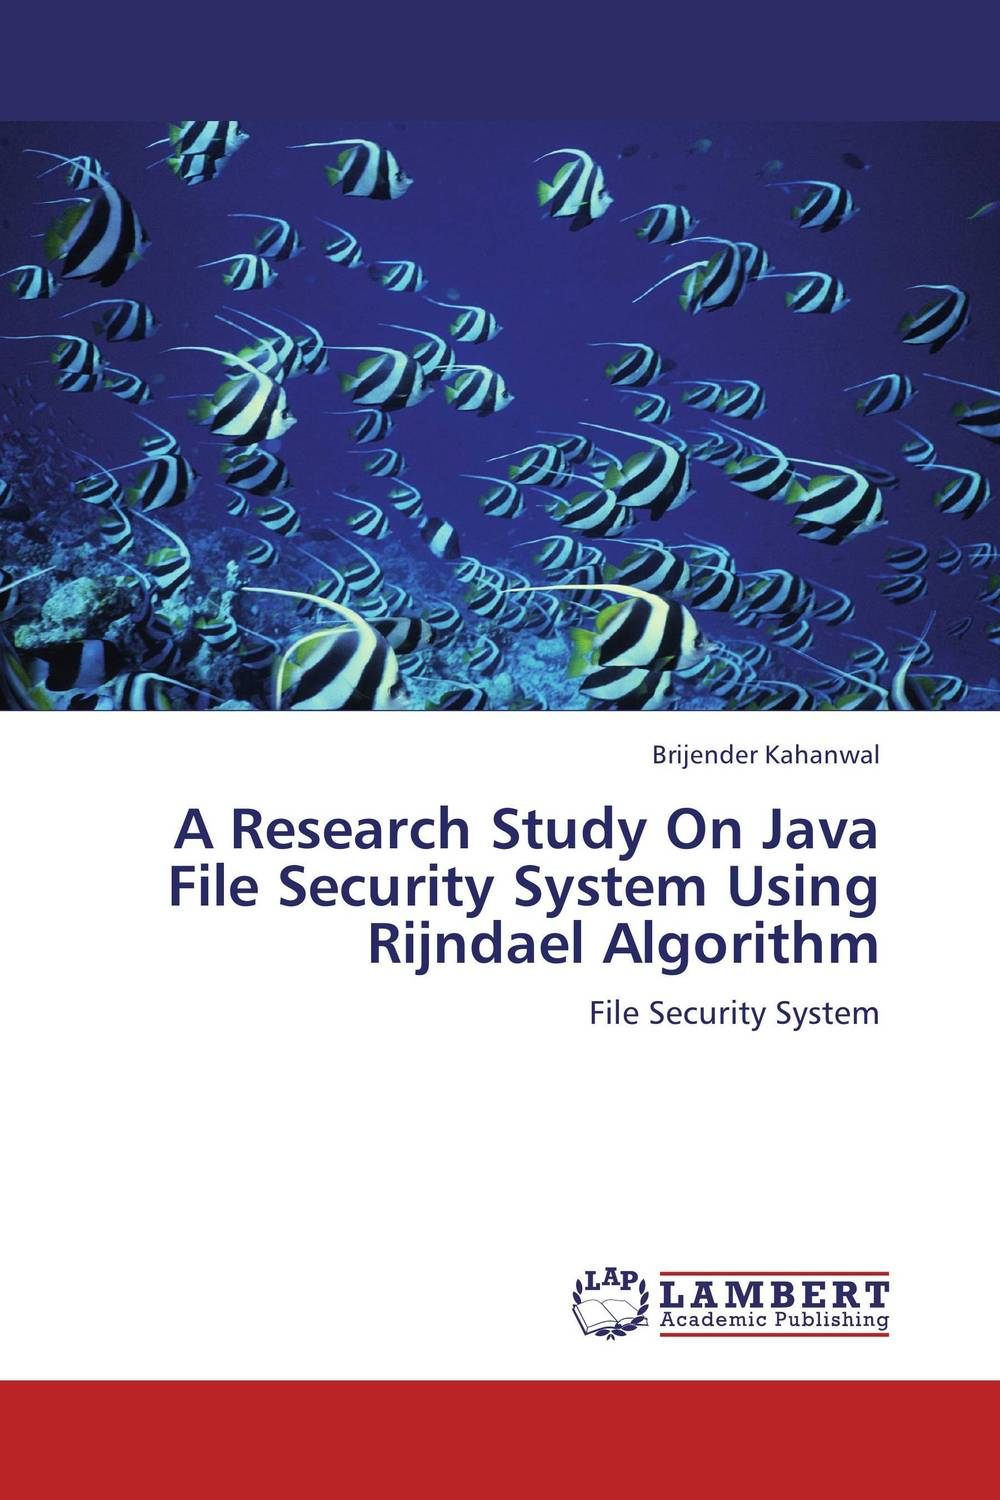 A Research Study On Java File Security System Using Rijndael Algorithm the conference of the birds a study of farid ud din attars poem using jali diwani calligraphy